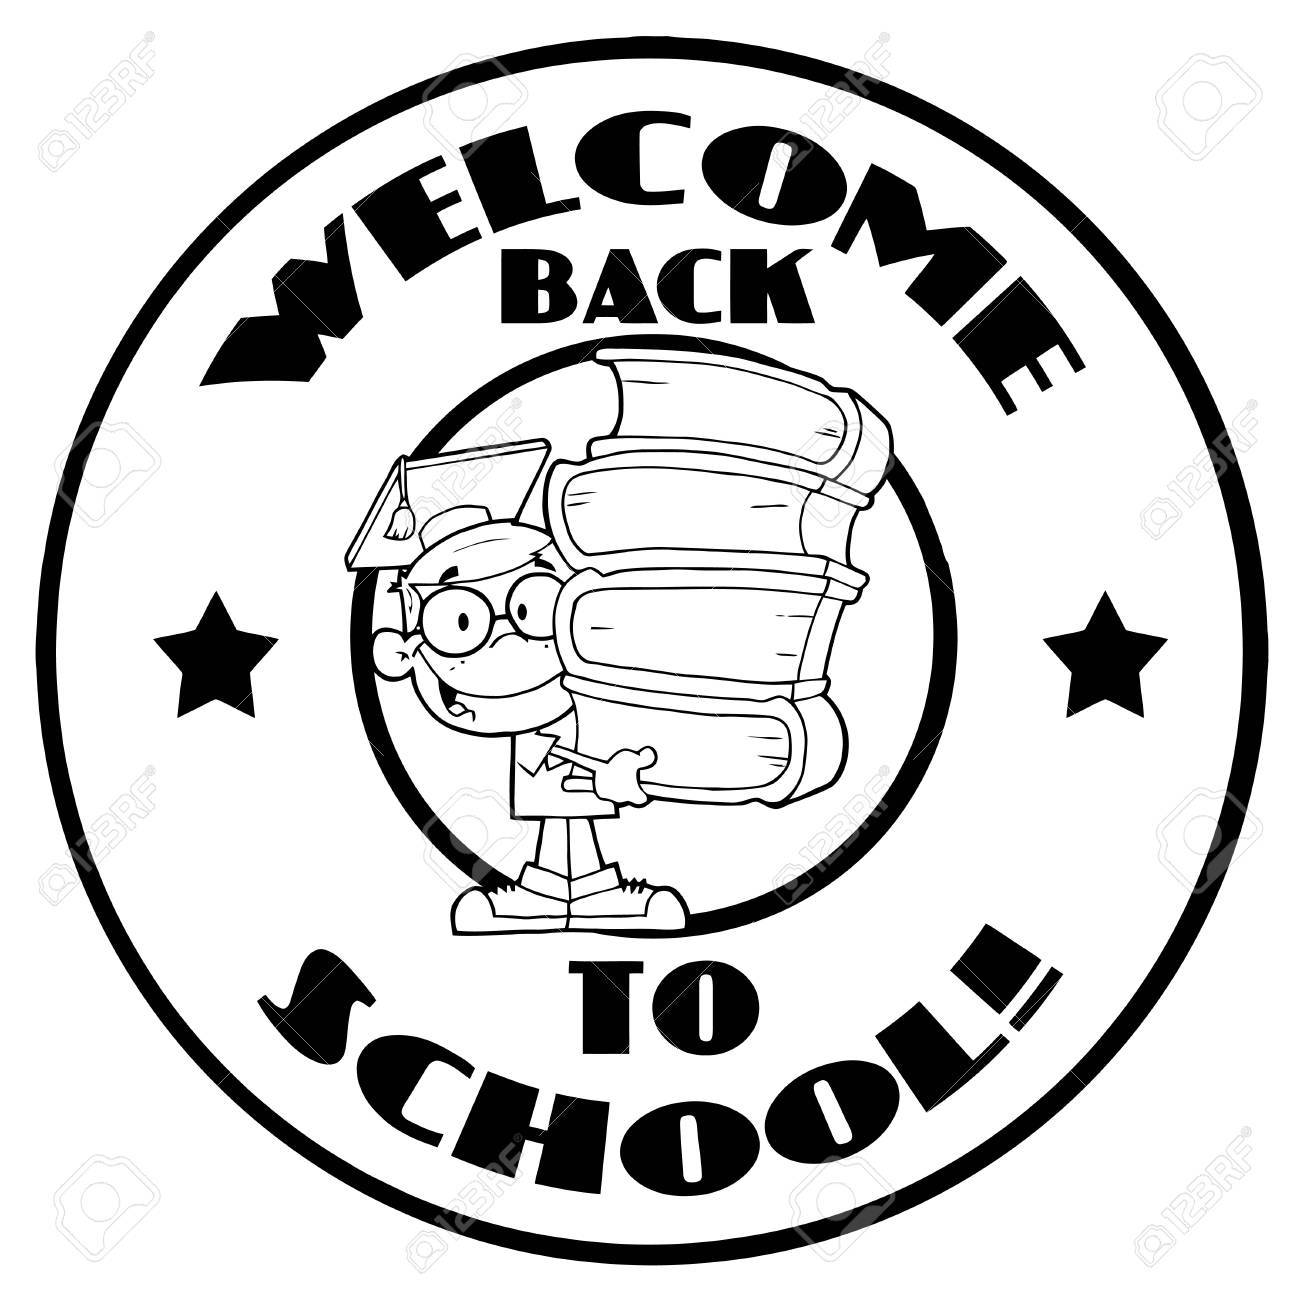 black and white school boy with books on a welcome back to school rh 123rf com welcome back to school teachers clipart welcome back to school clipart images